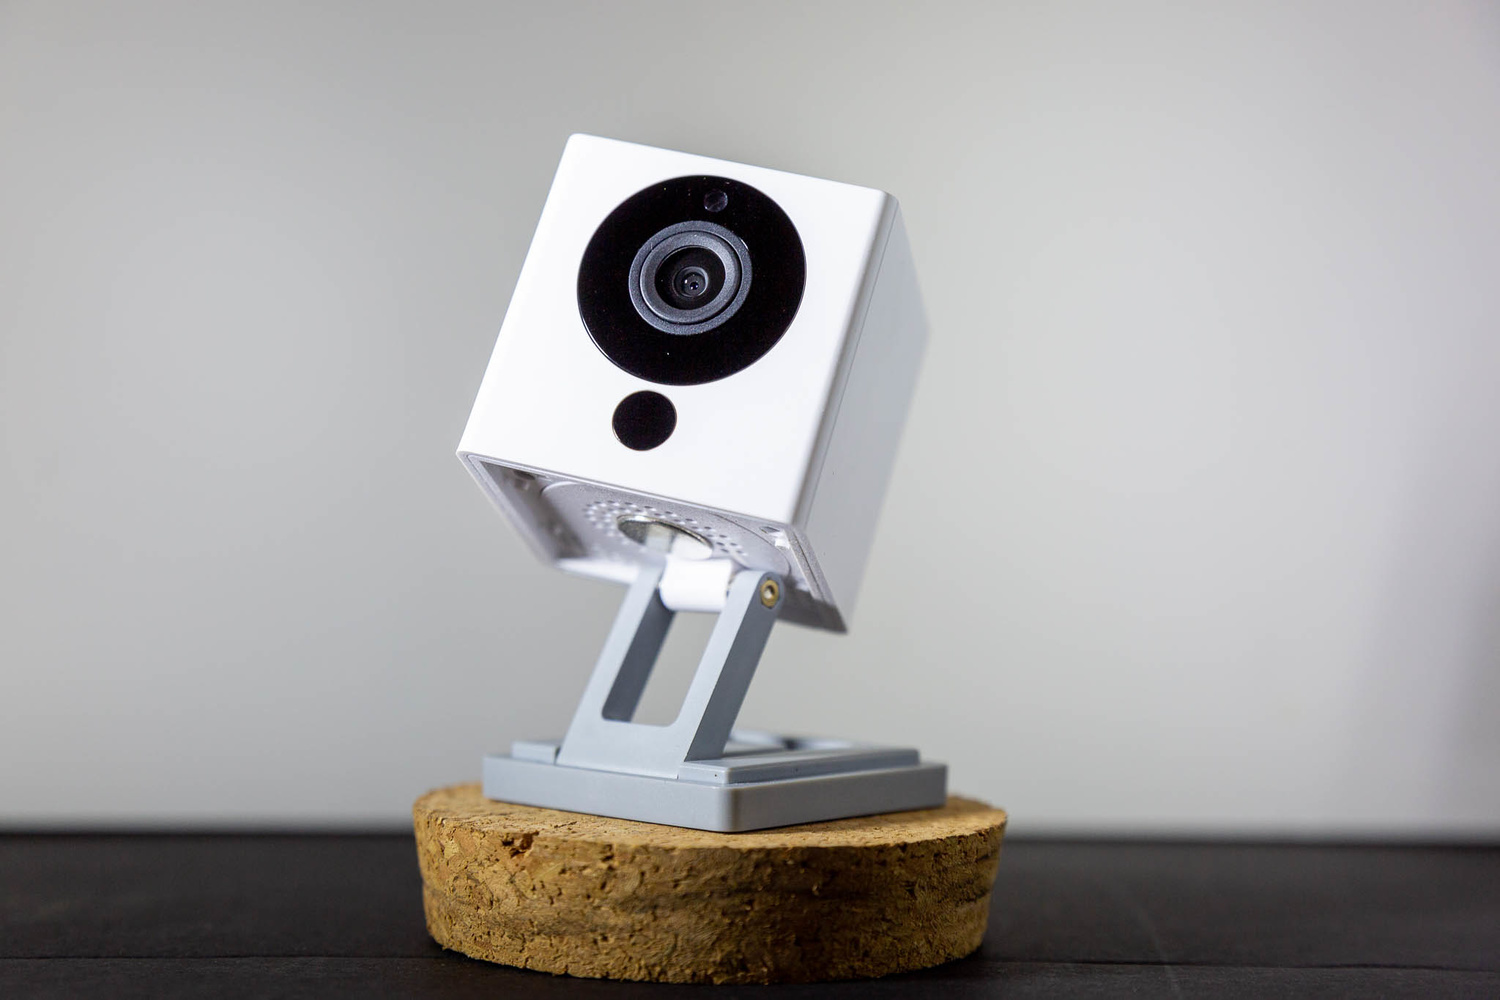 Fstoppers Reviews the Wyze Cam: A $25 Security Cam for Your